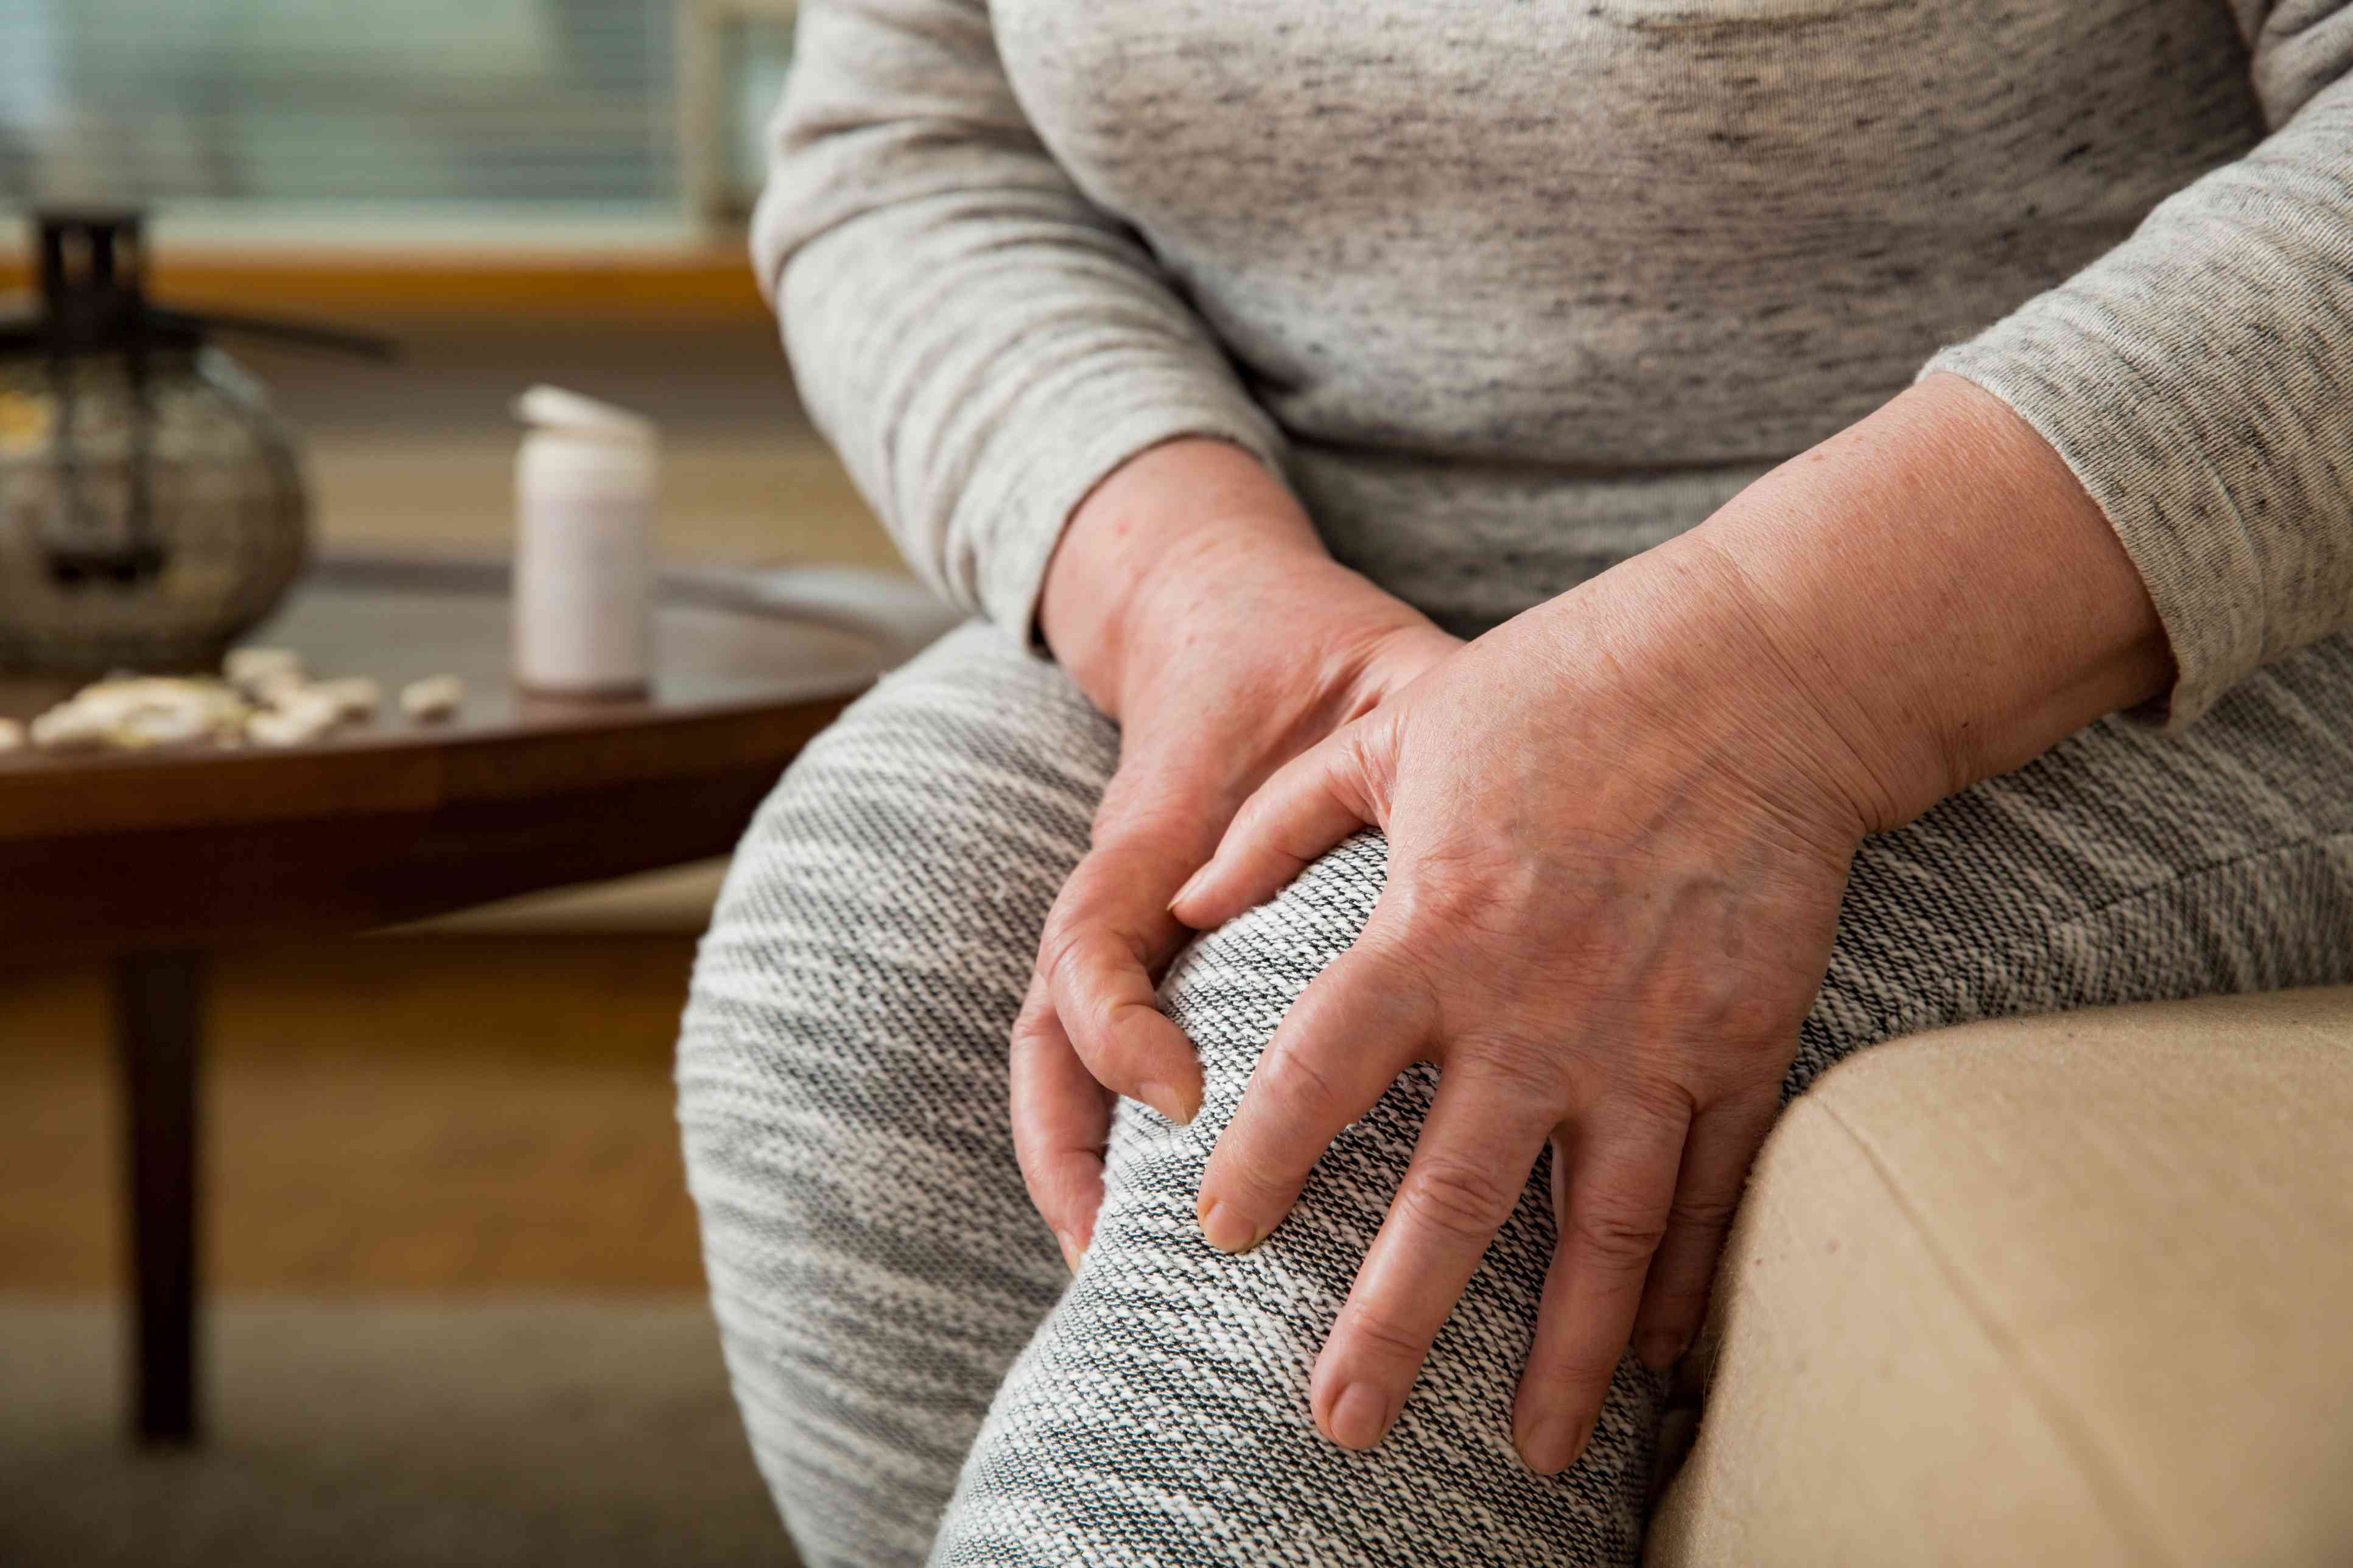 Older woman suffering from pain in knees at home. Holding her knee and massaging with hands, feeling exhausted, sitting on sofa in living room. Close-up. Medications and pills on table